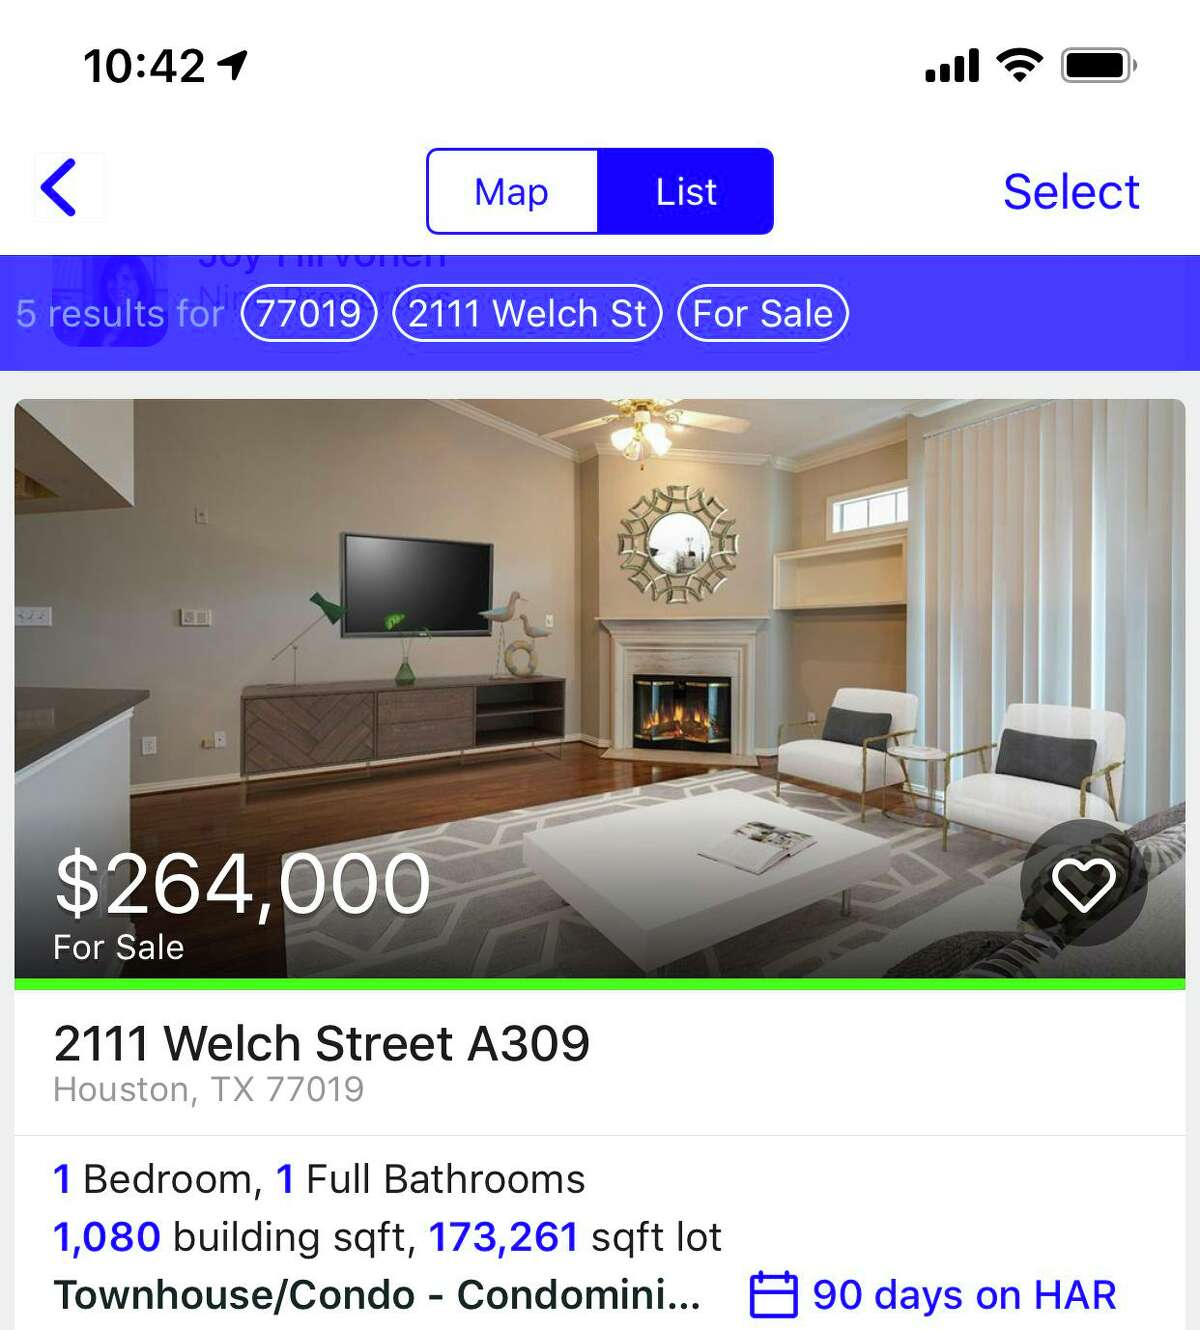 The Houston Area Realtors' app lets you search for rental and purchase properties in the Houston area. CONTINUE to see screenshots from other apps mentioned in the story.